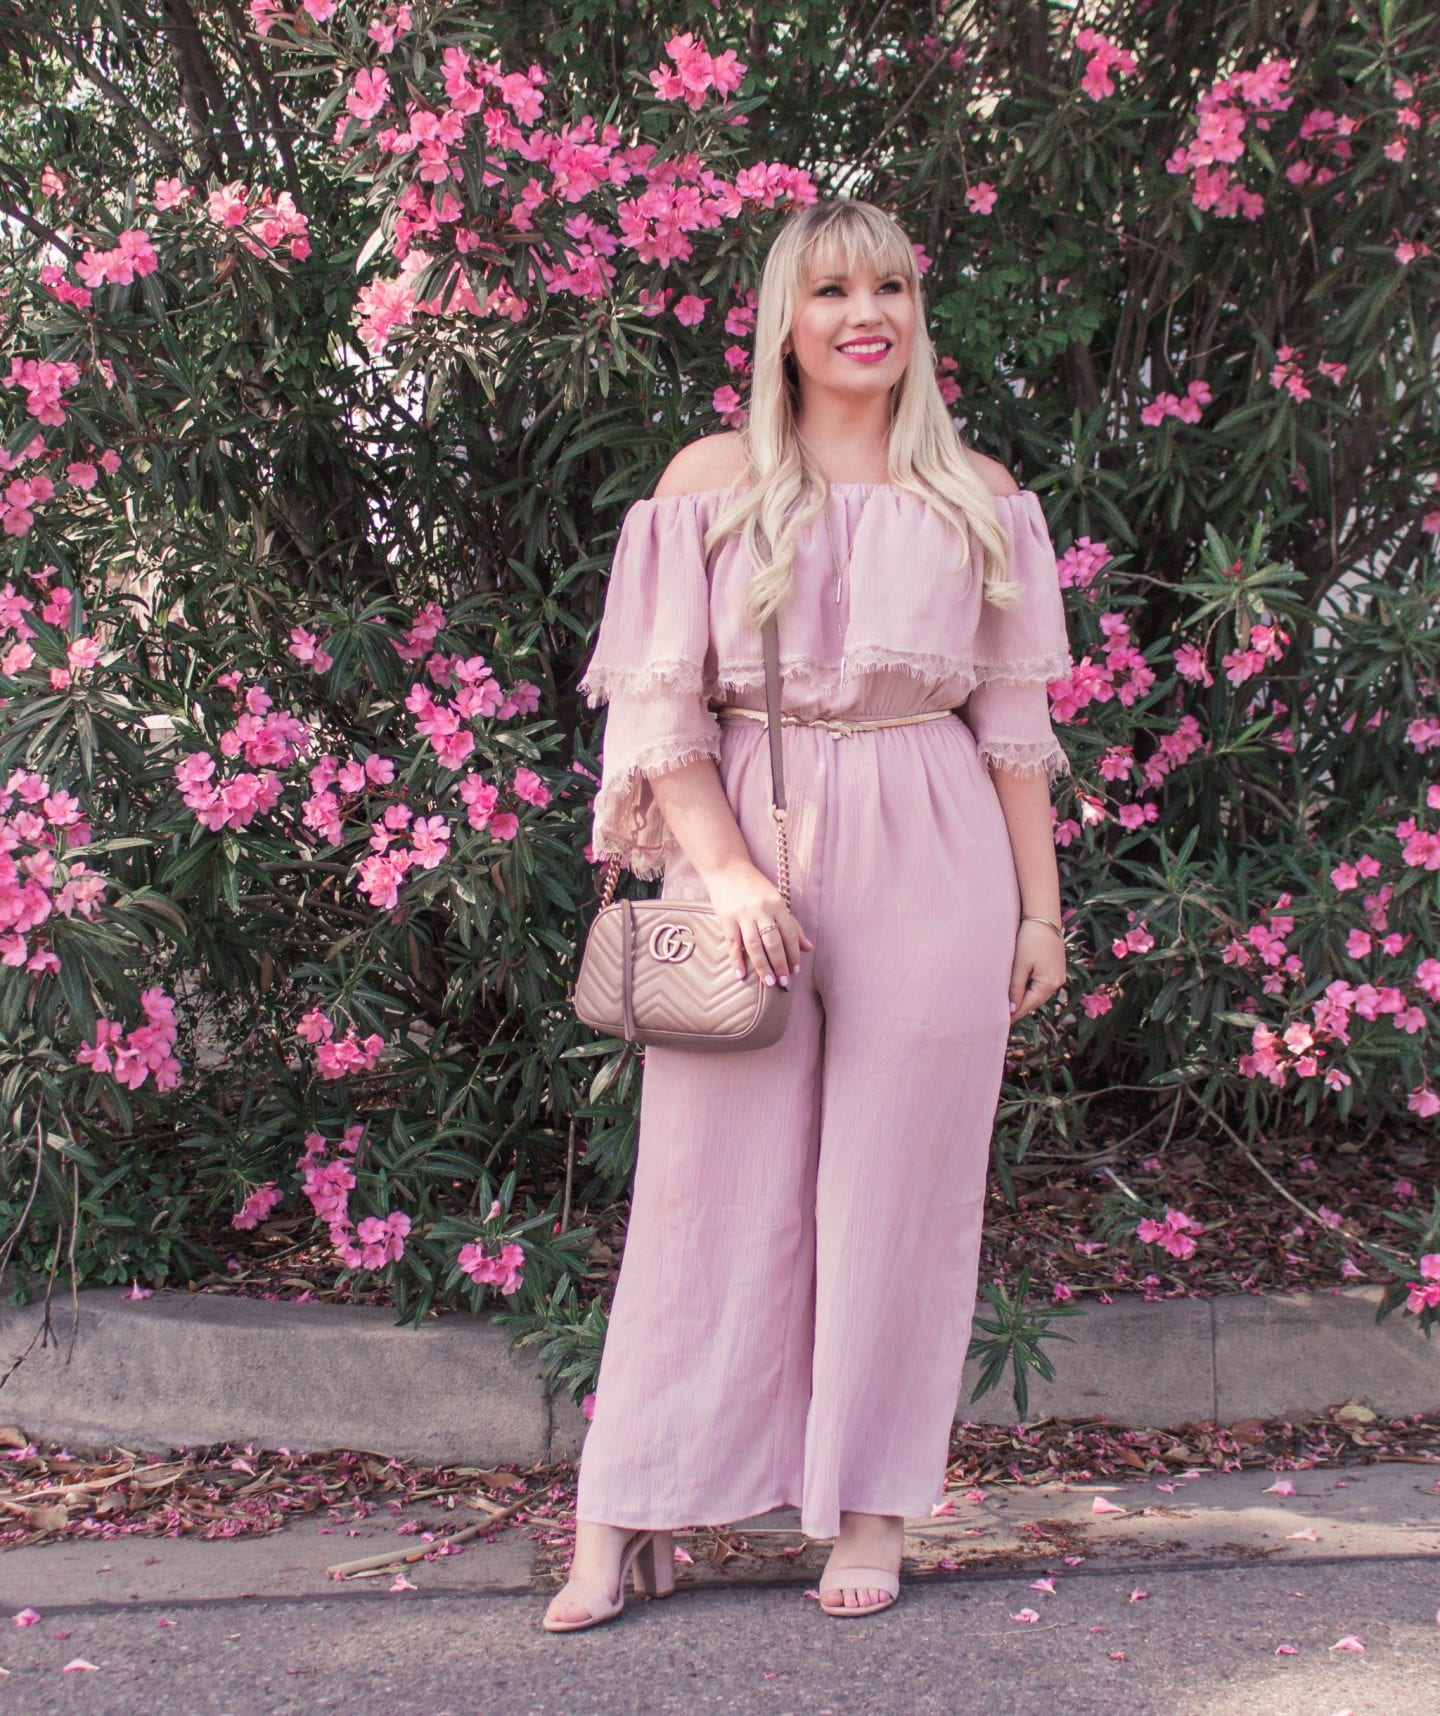 Elizabeth Hugen of Lizzie in Lace shares four simple ways to stay positive